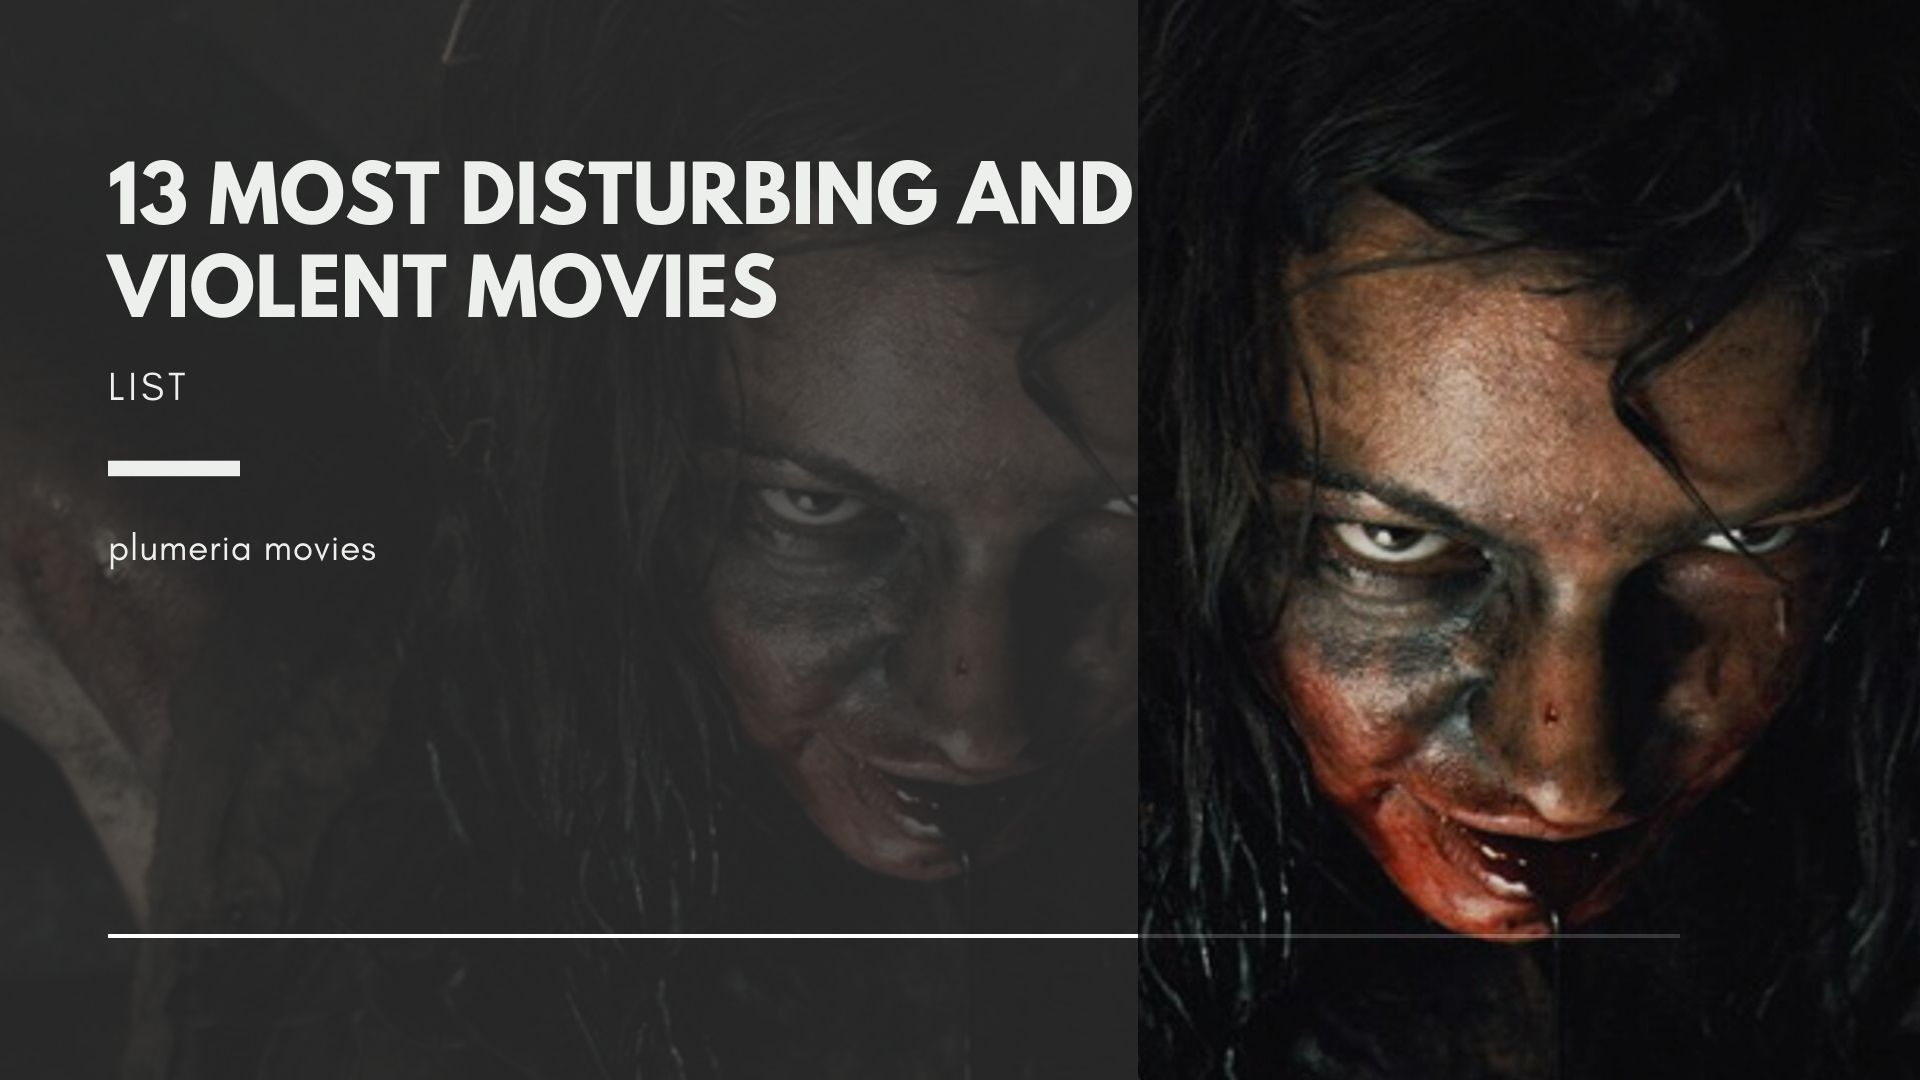 13 Most Disturbing and Violent Movies